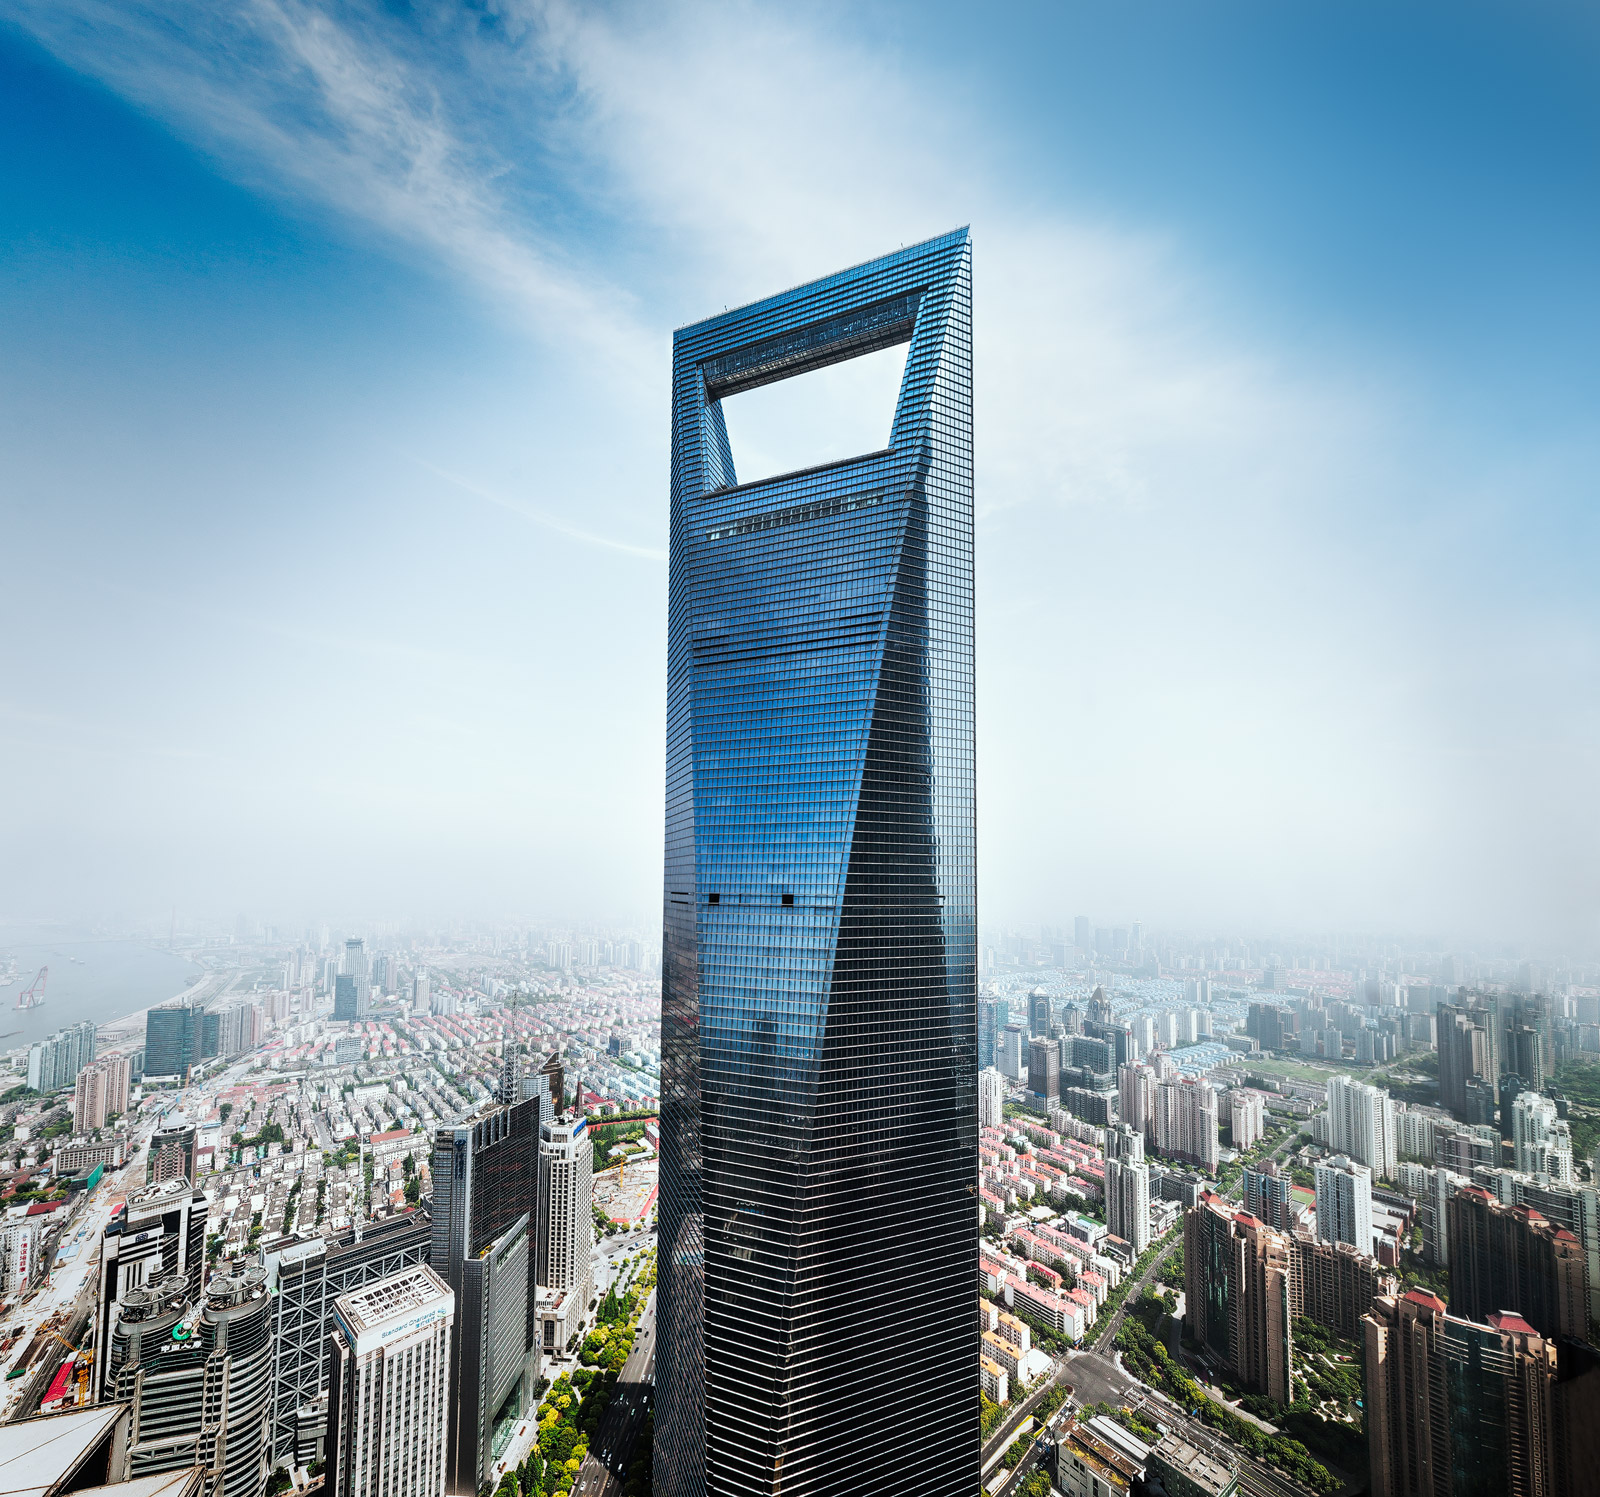 Shanghai World Financial Center - SWFC